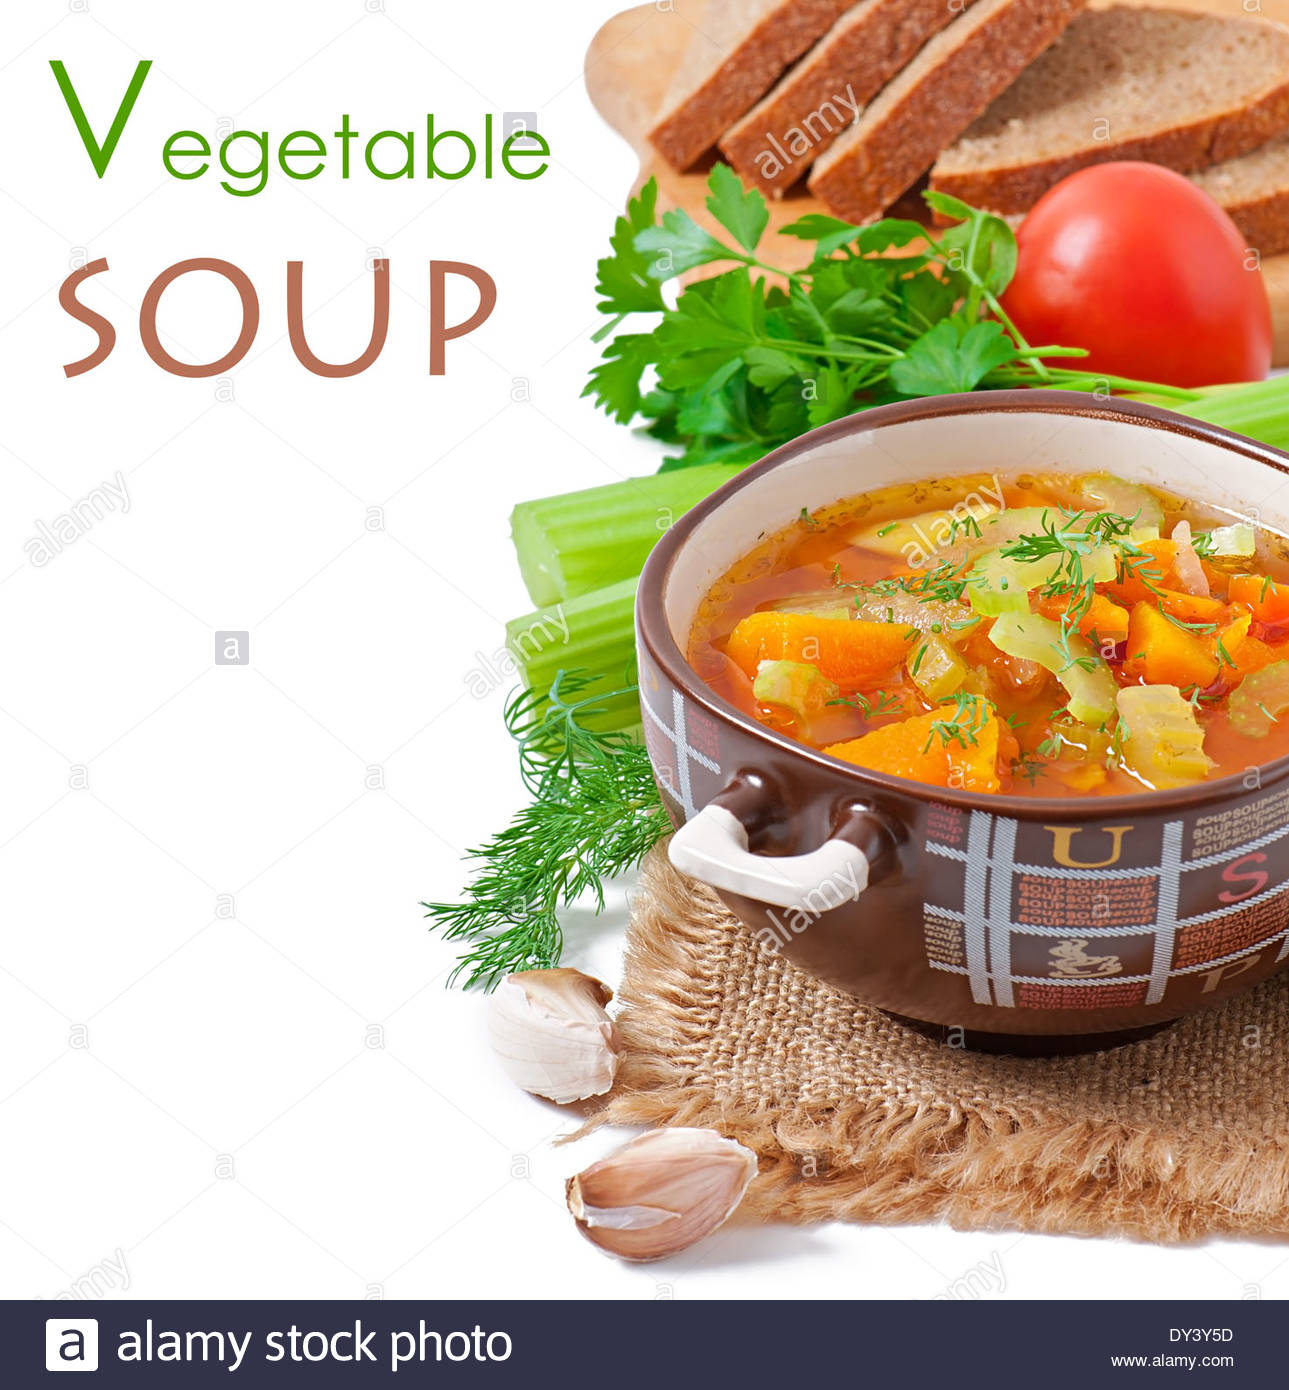 Vegetable soup isolated on white background Stock Photo 68313993 1289x1390